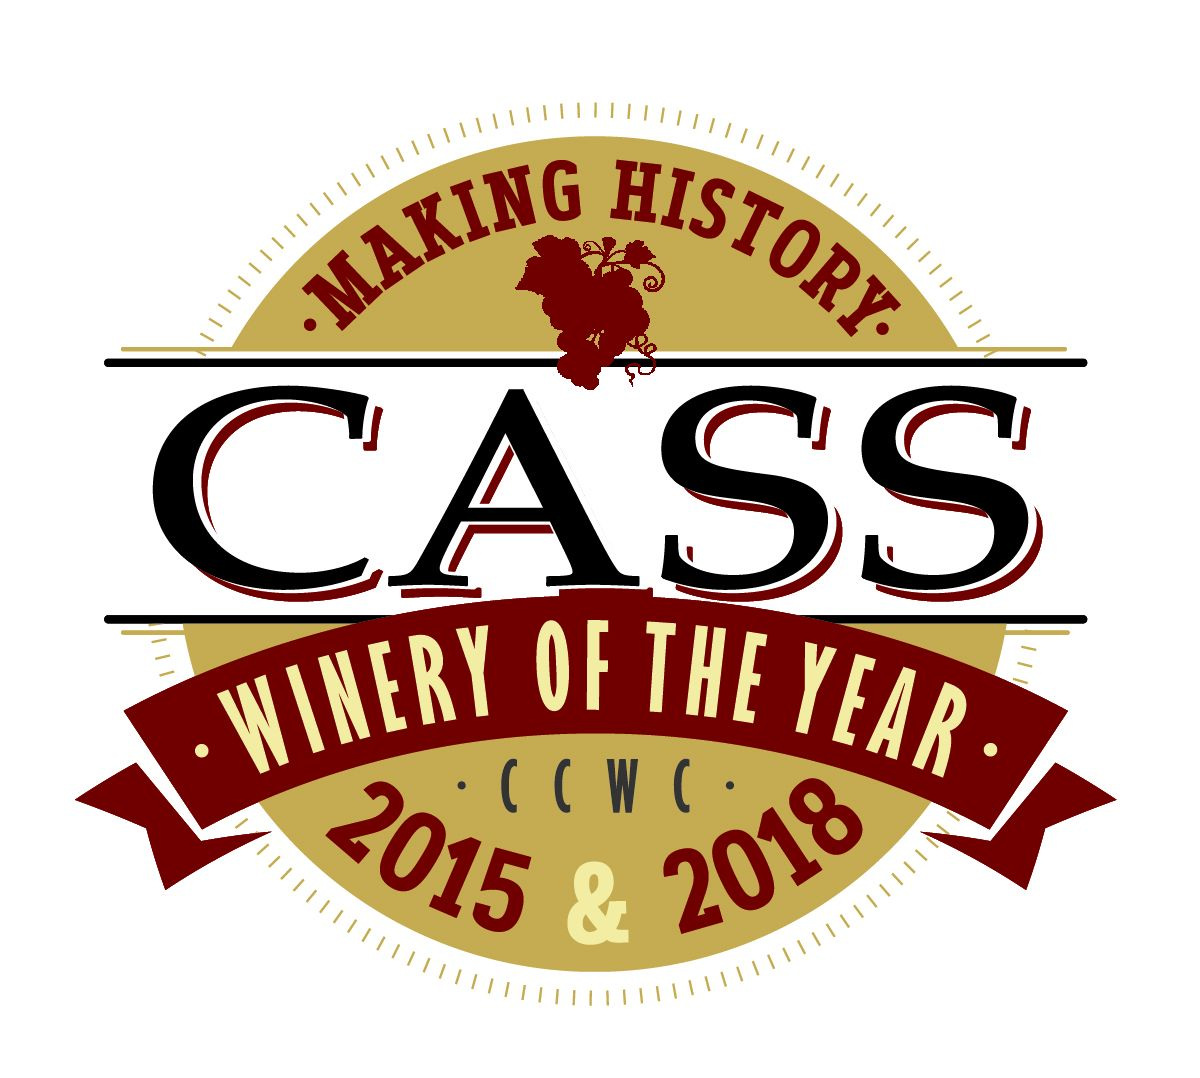 Winery of the Year Logo